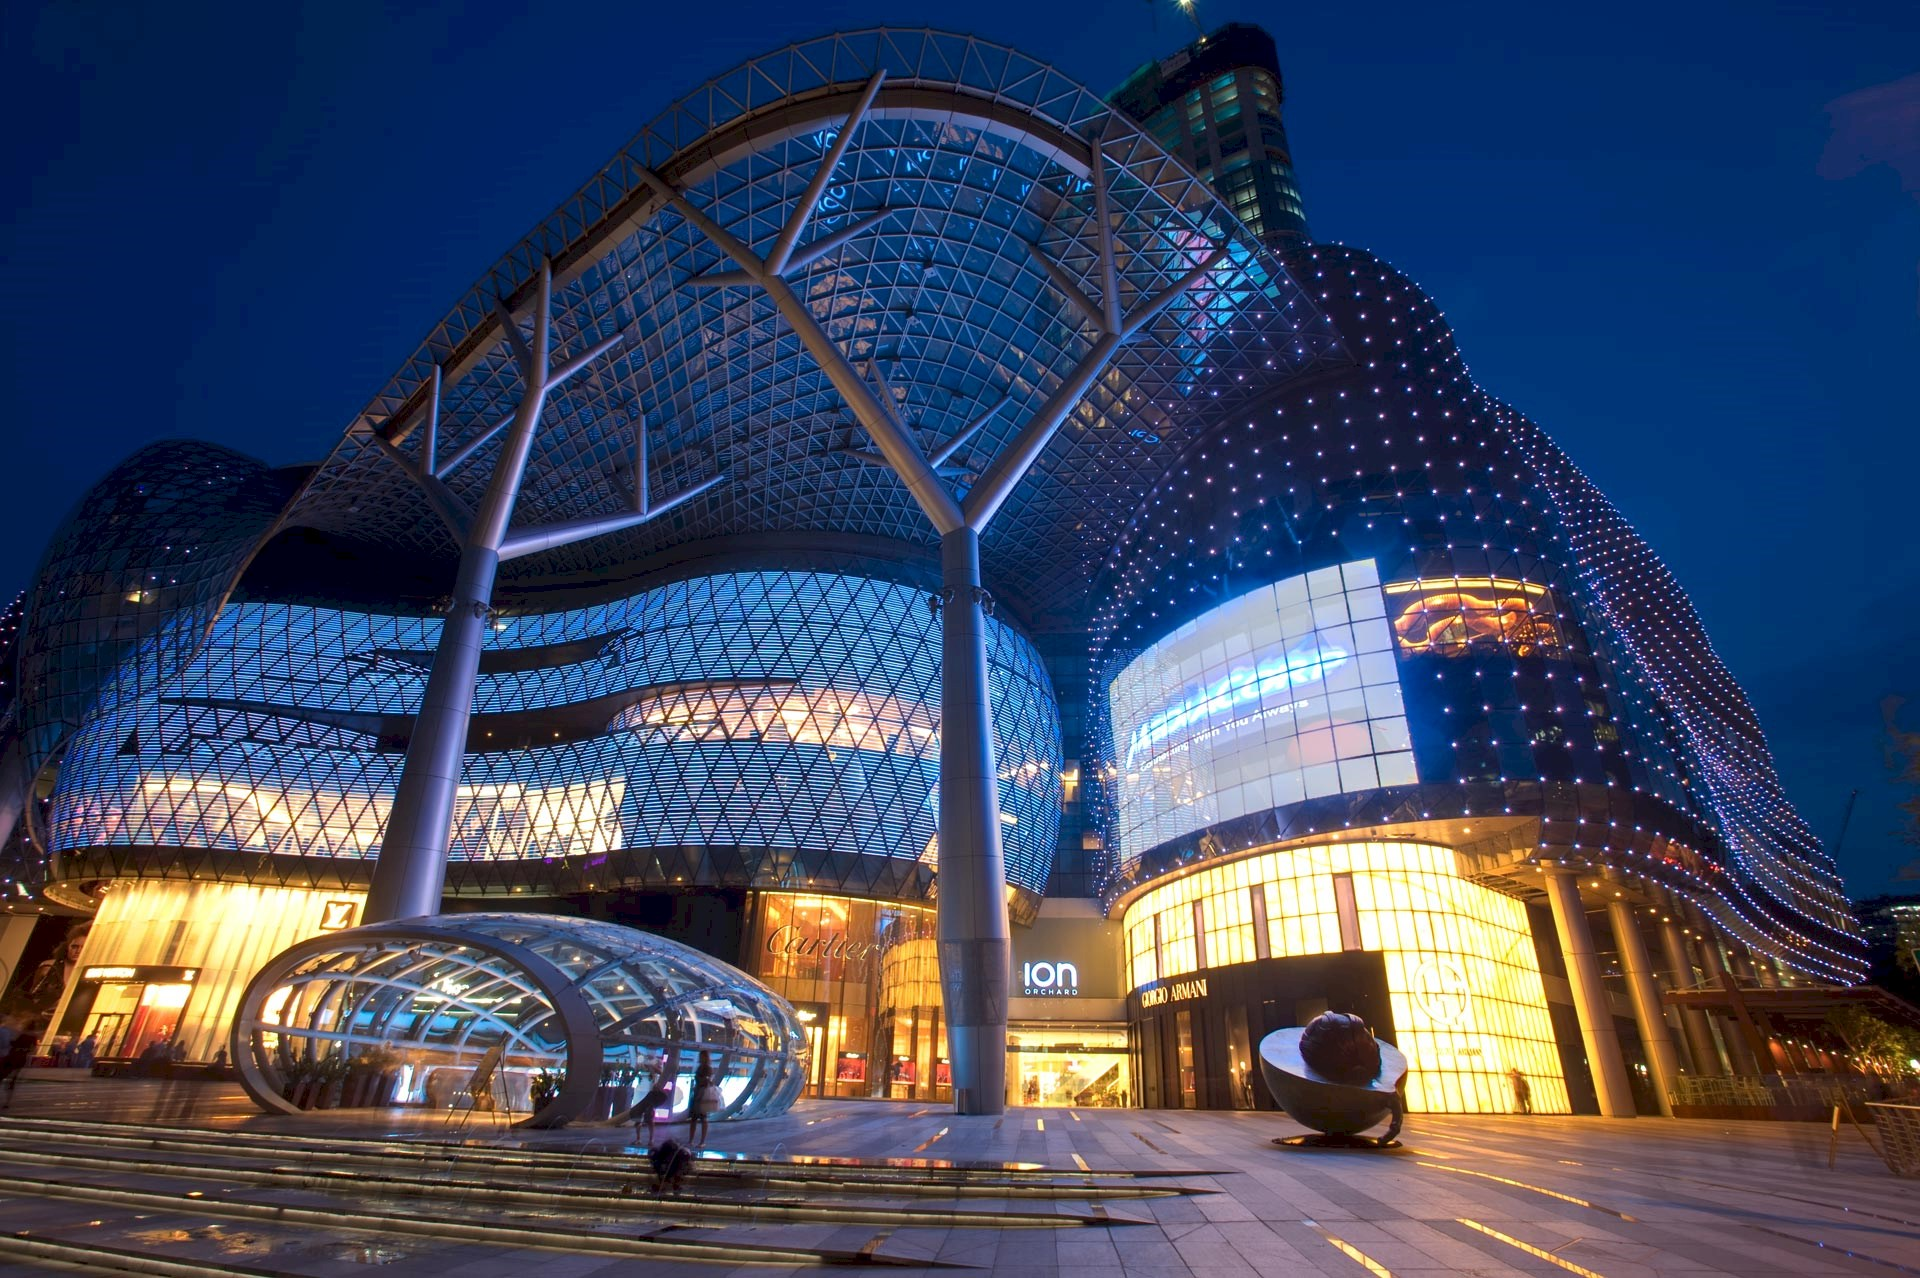 Benoy's ION Orchard, Singapore Receives Quality Building Award